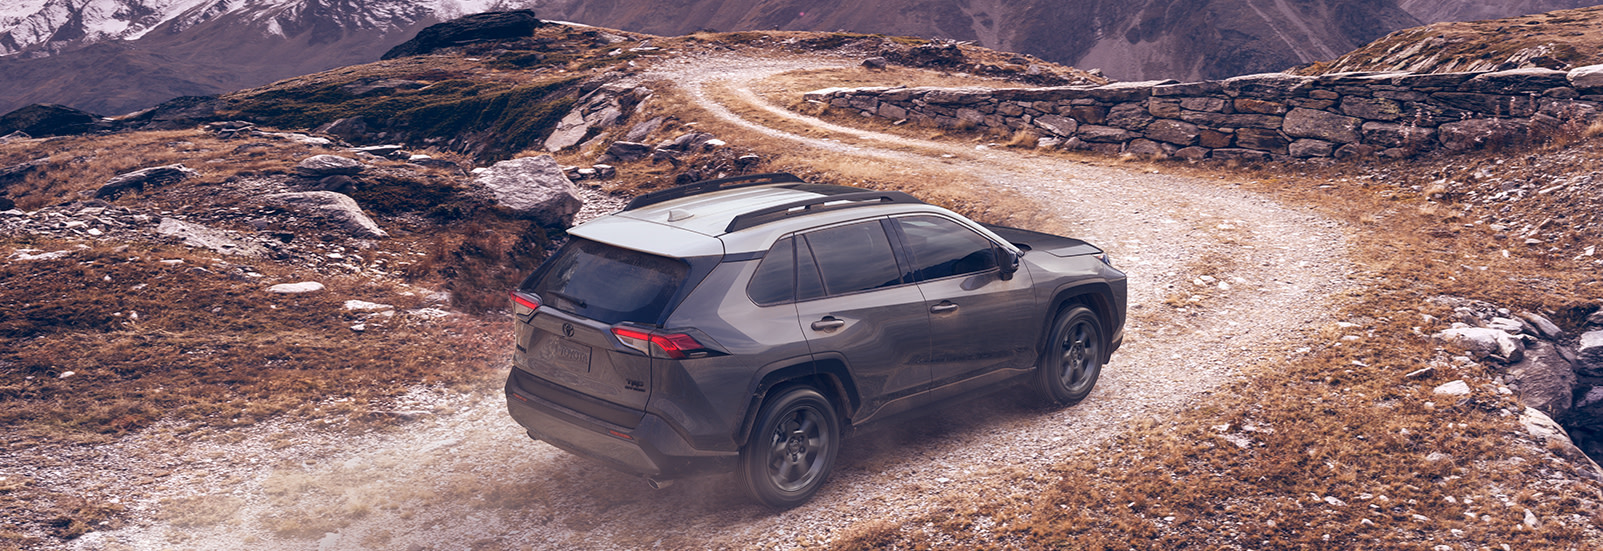 Performance features of the 2020 Toyota RAV4 & RAV4 Hybrid at Tri County Toyota | Grey 2020 RAV4 driving on rocky road